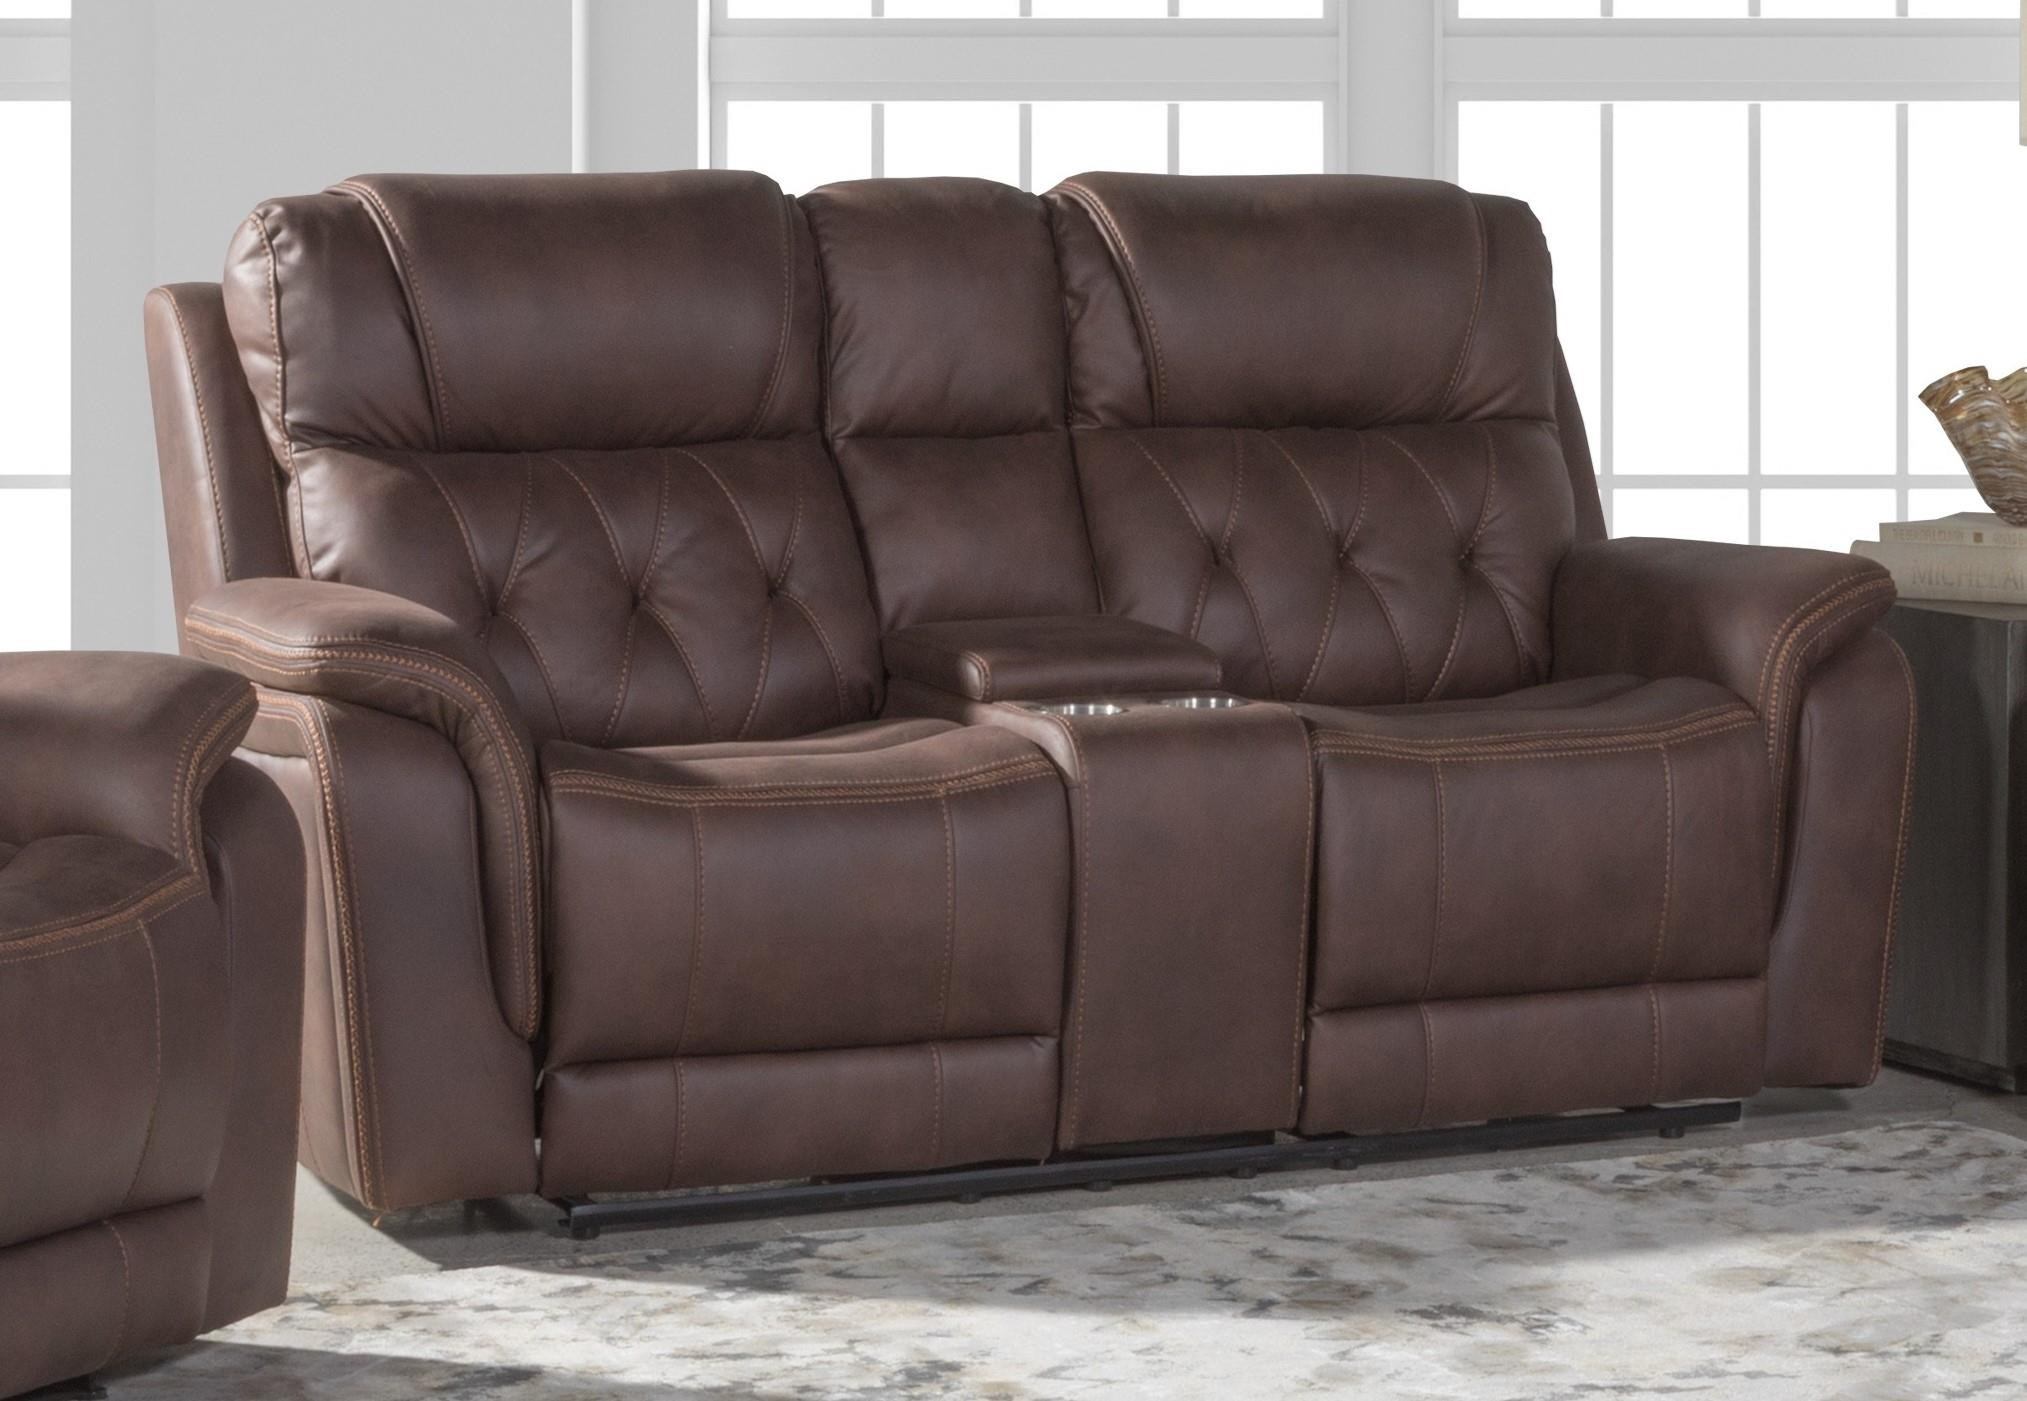 80243 RECLINING CONSOLE LOVESEAT by Lifestyle at Furniture Fair - North Carolina